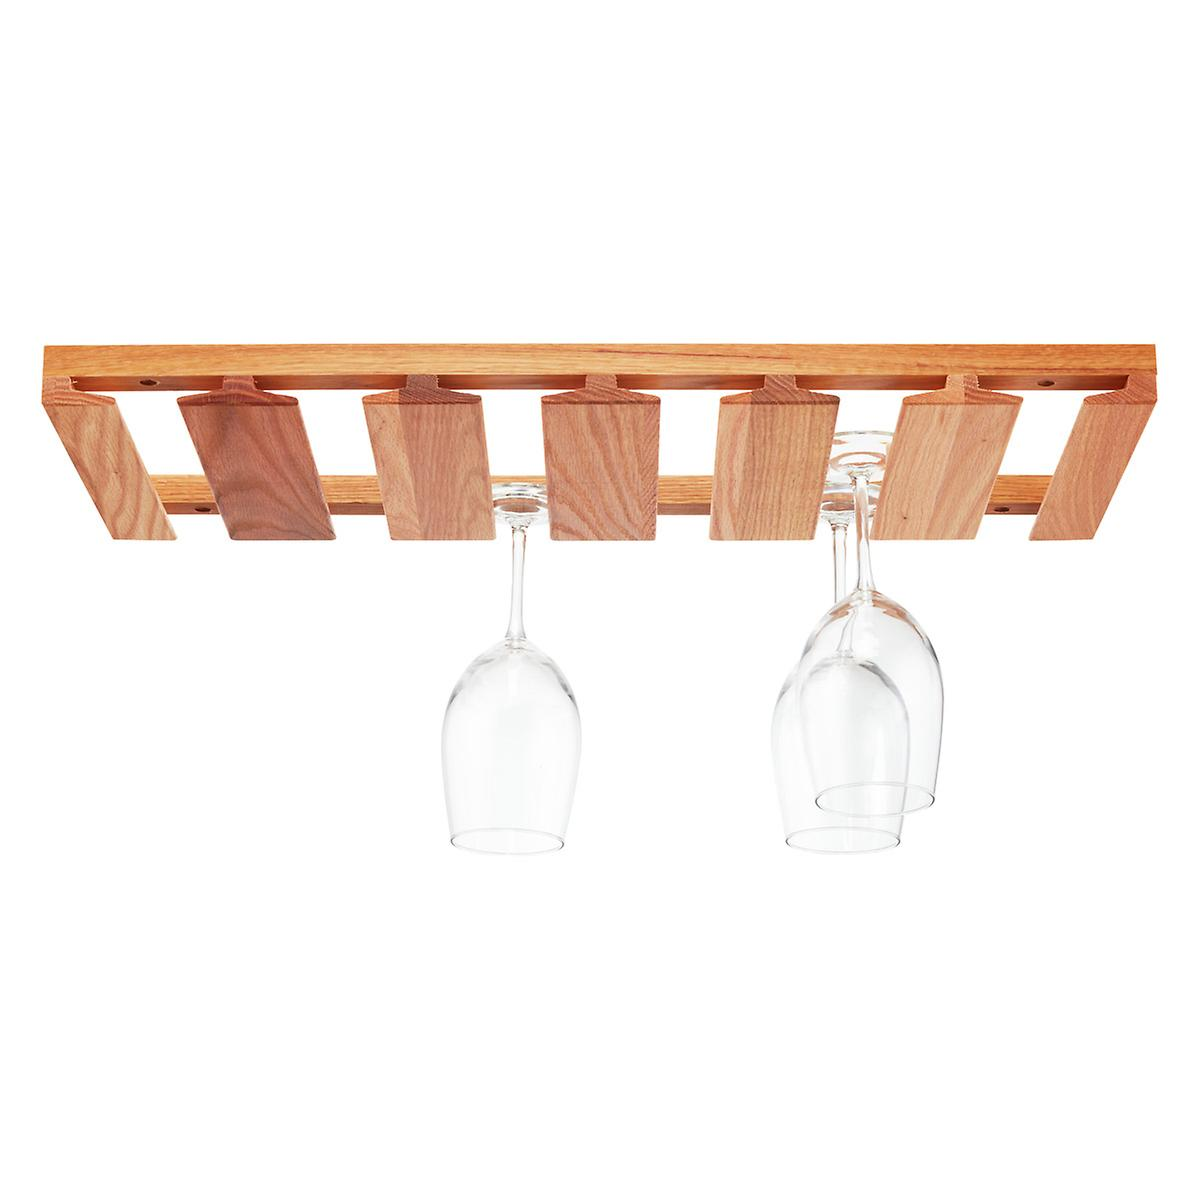 J k adams oak undercabinet wine glass rack the Hanging wooden wine rack